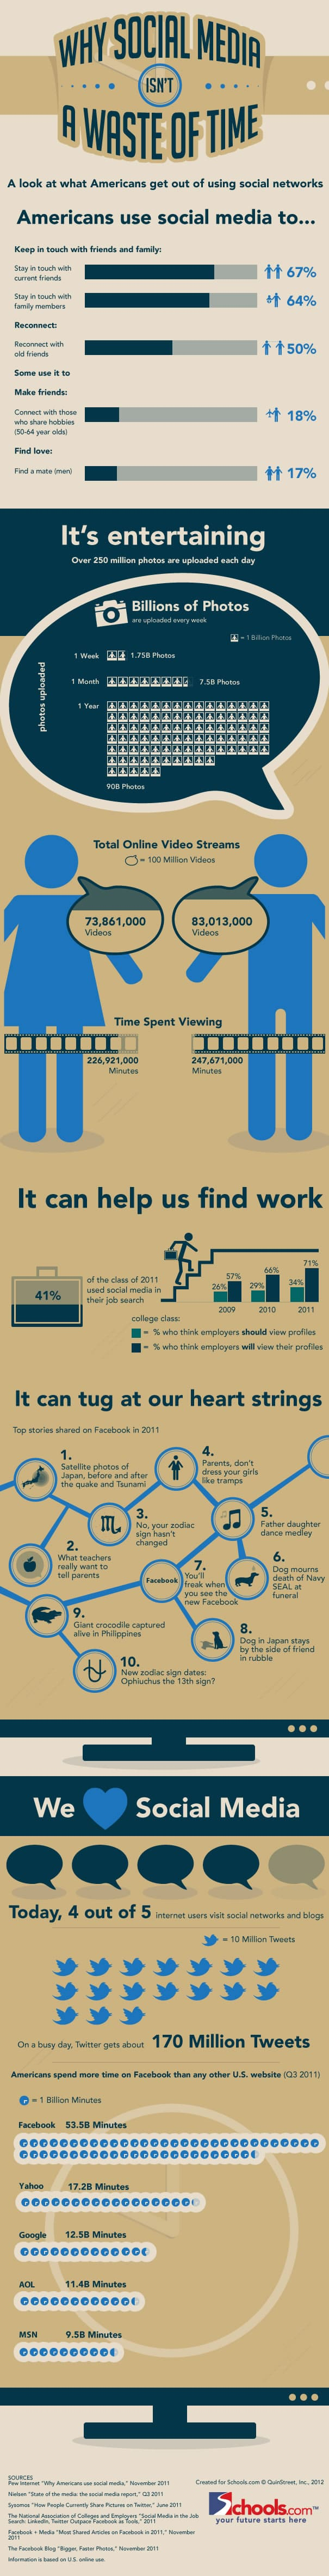 Why Social Media Isnt A Waste Of Time Infographic